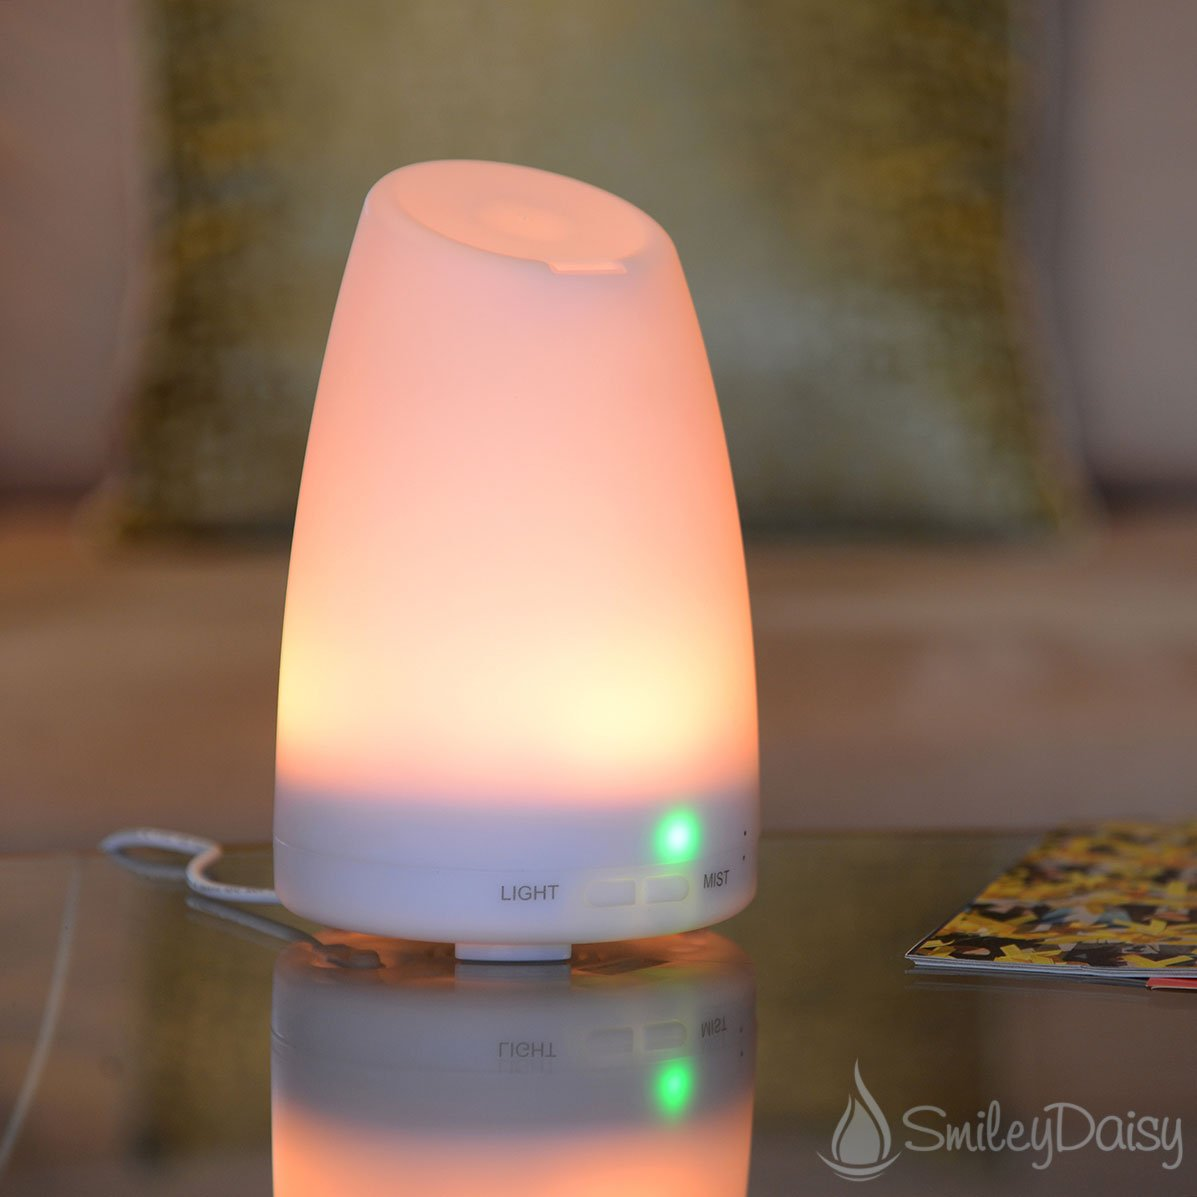 Review of the Top 5 Most Popular Ultrasonic Essential Oil Diffusers #C04F0B